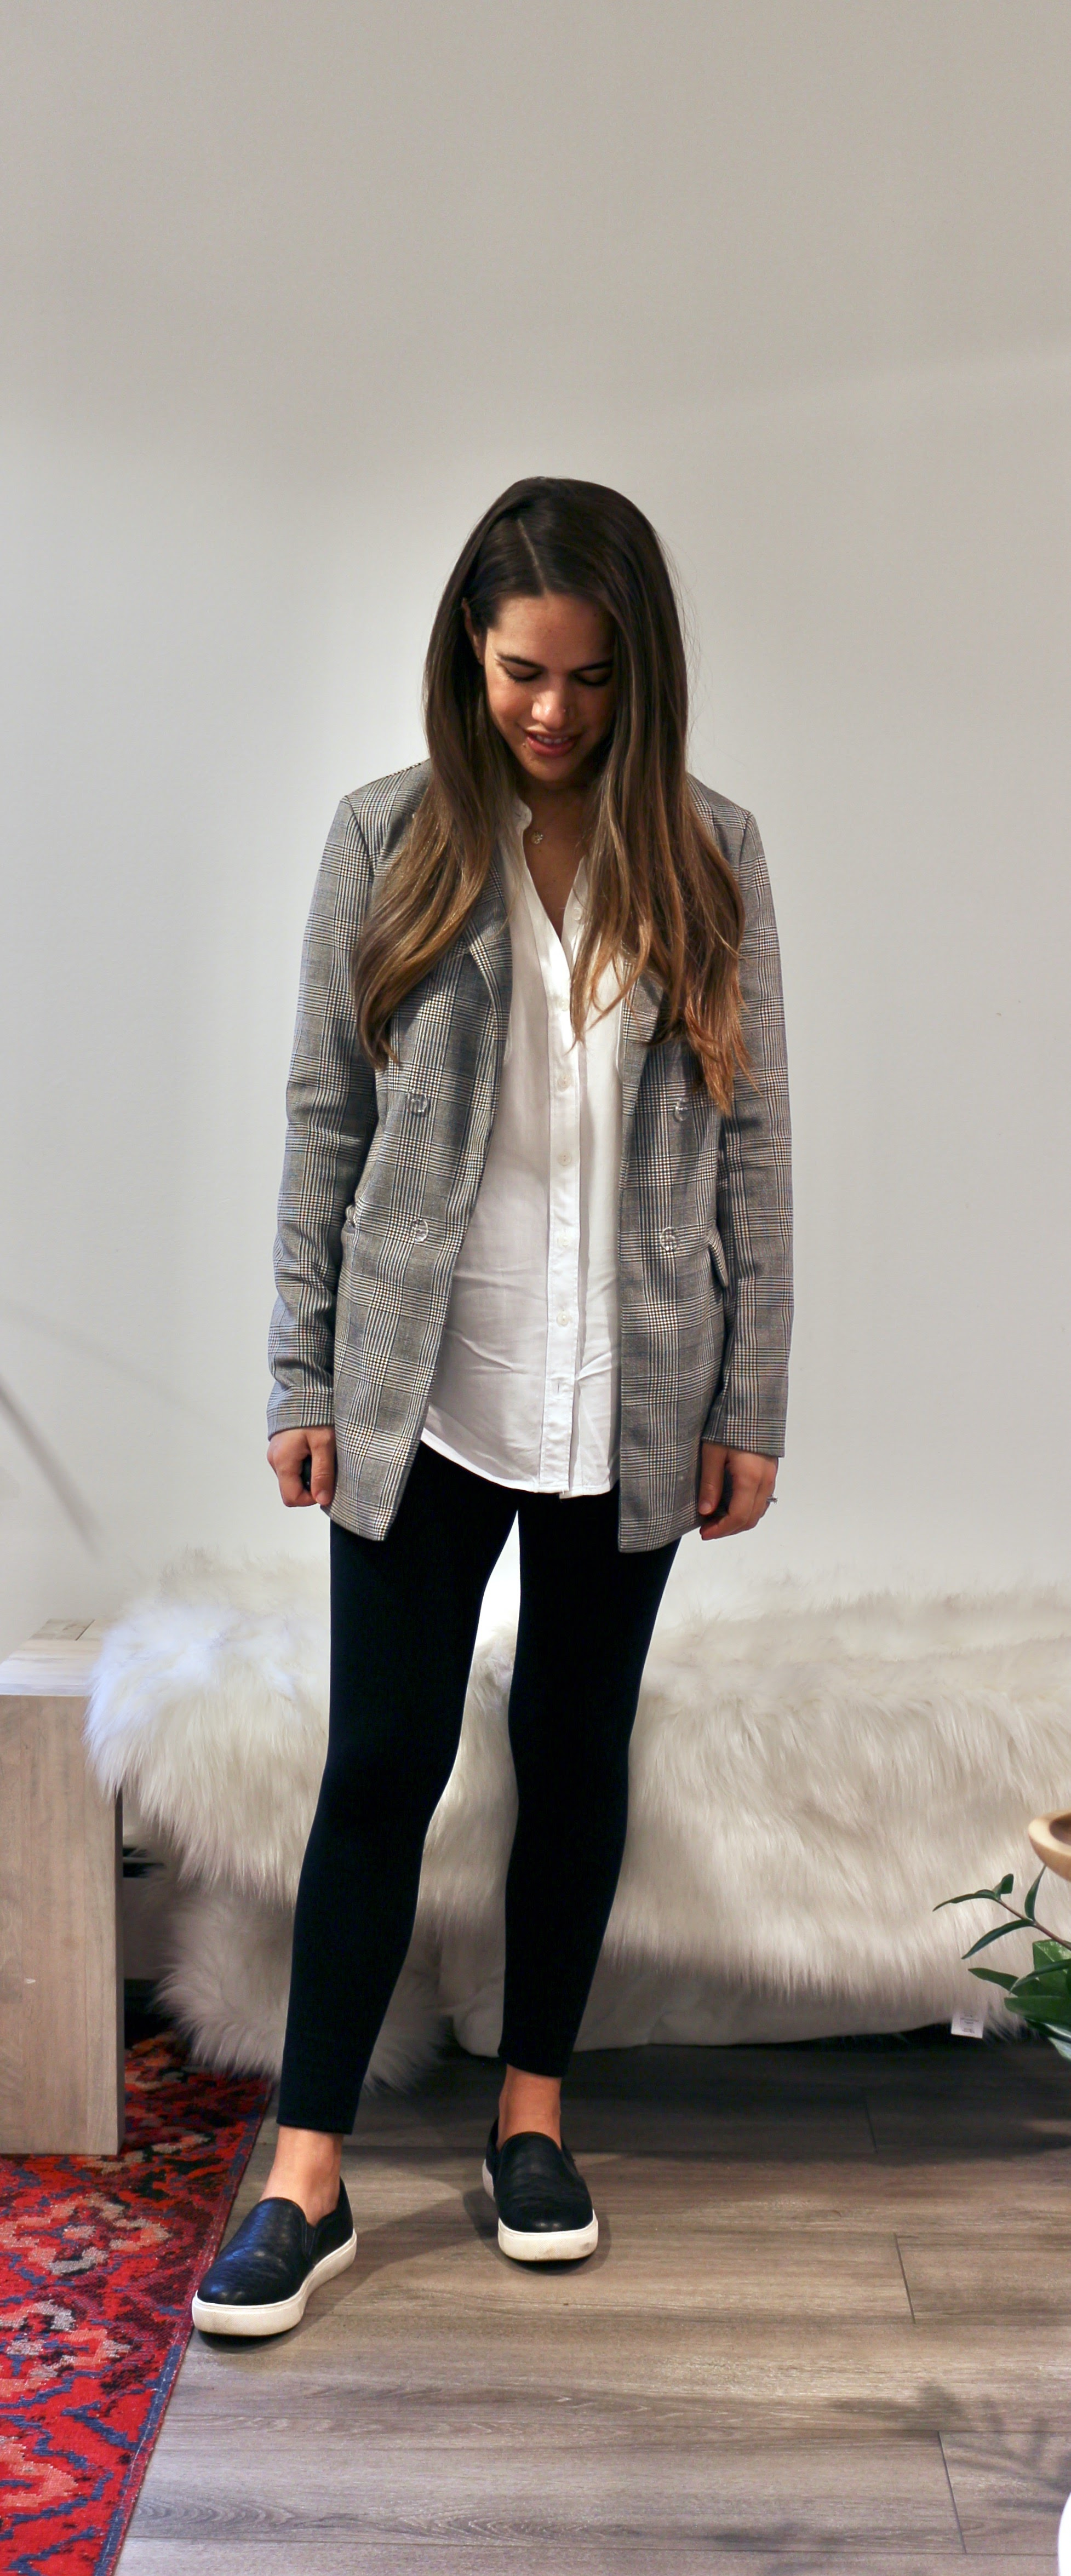 Jules in Flats - Plaid Blazer + Leggings (Business Casual Workwear on a Budget)